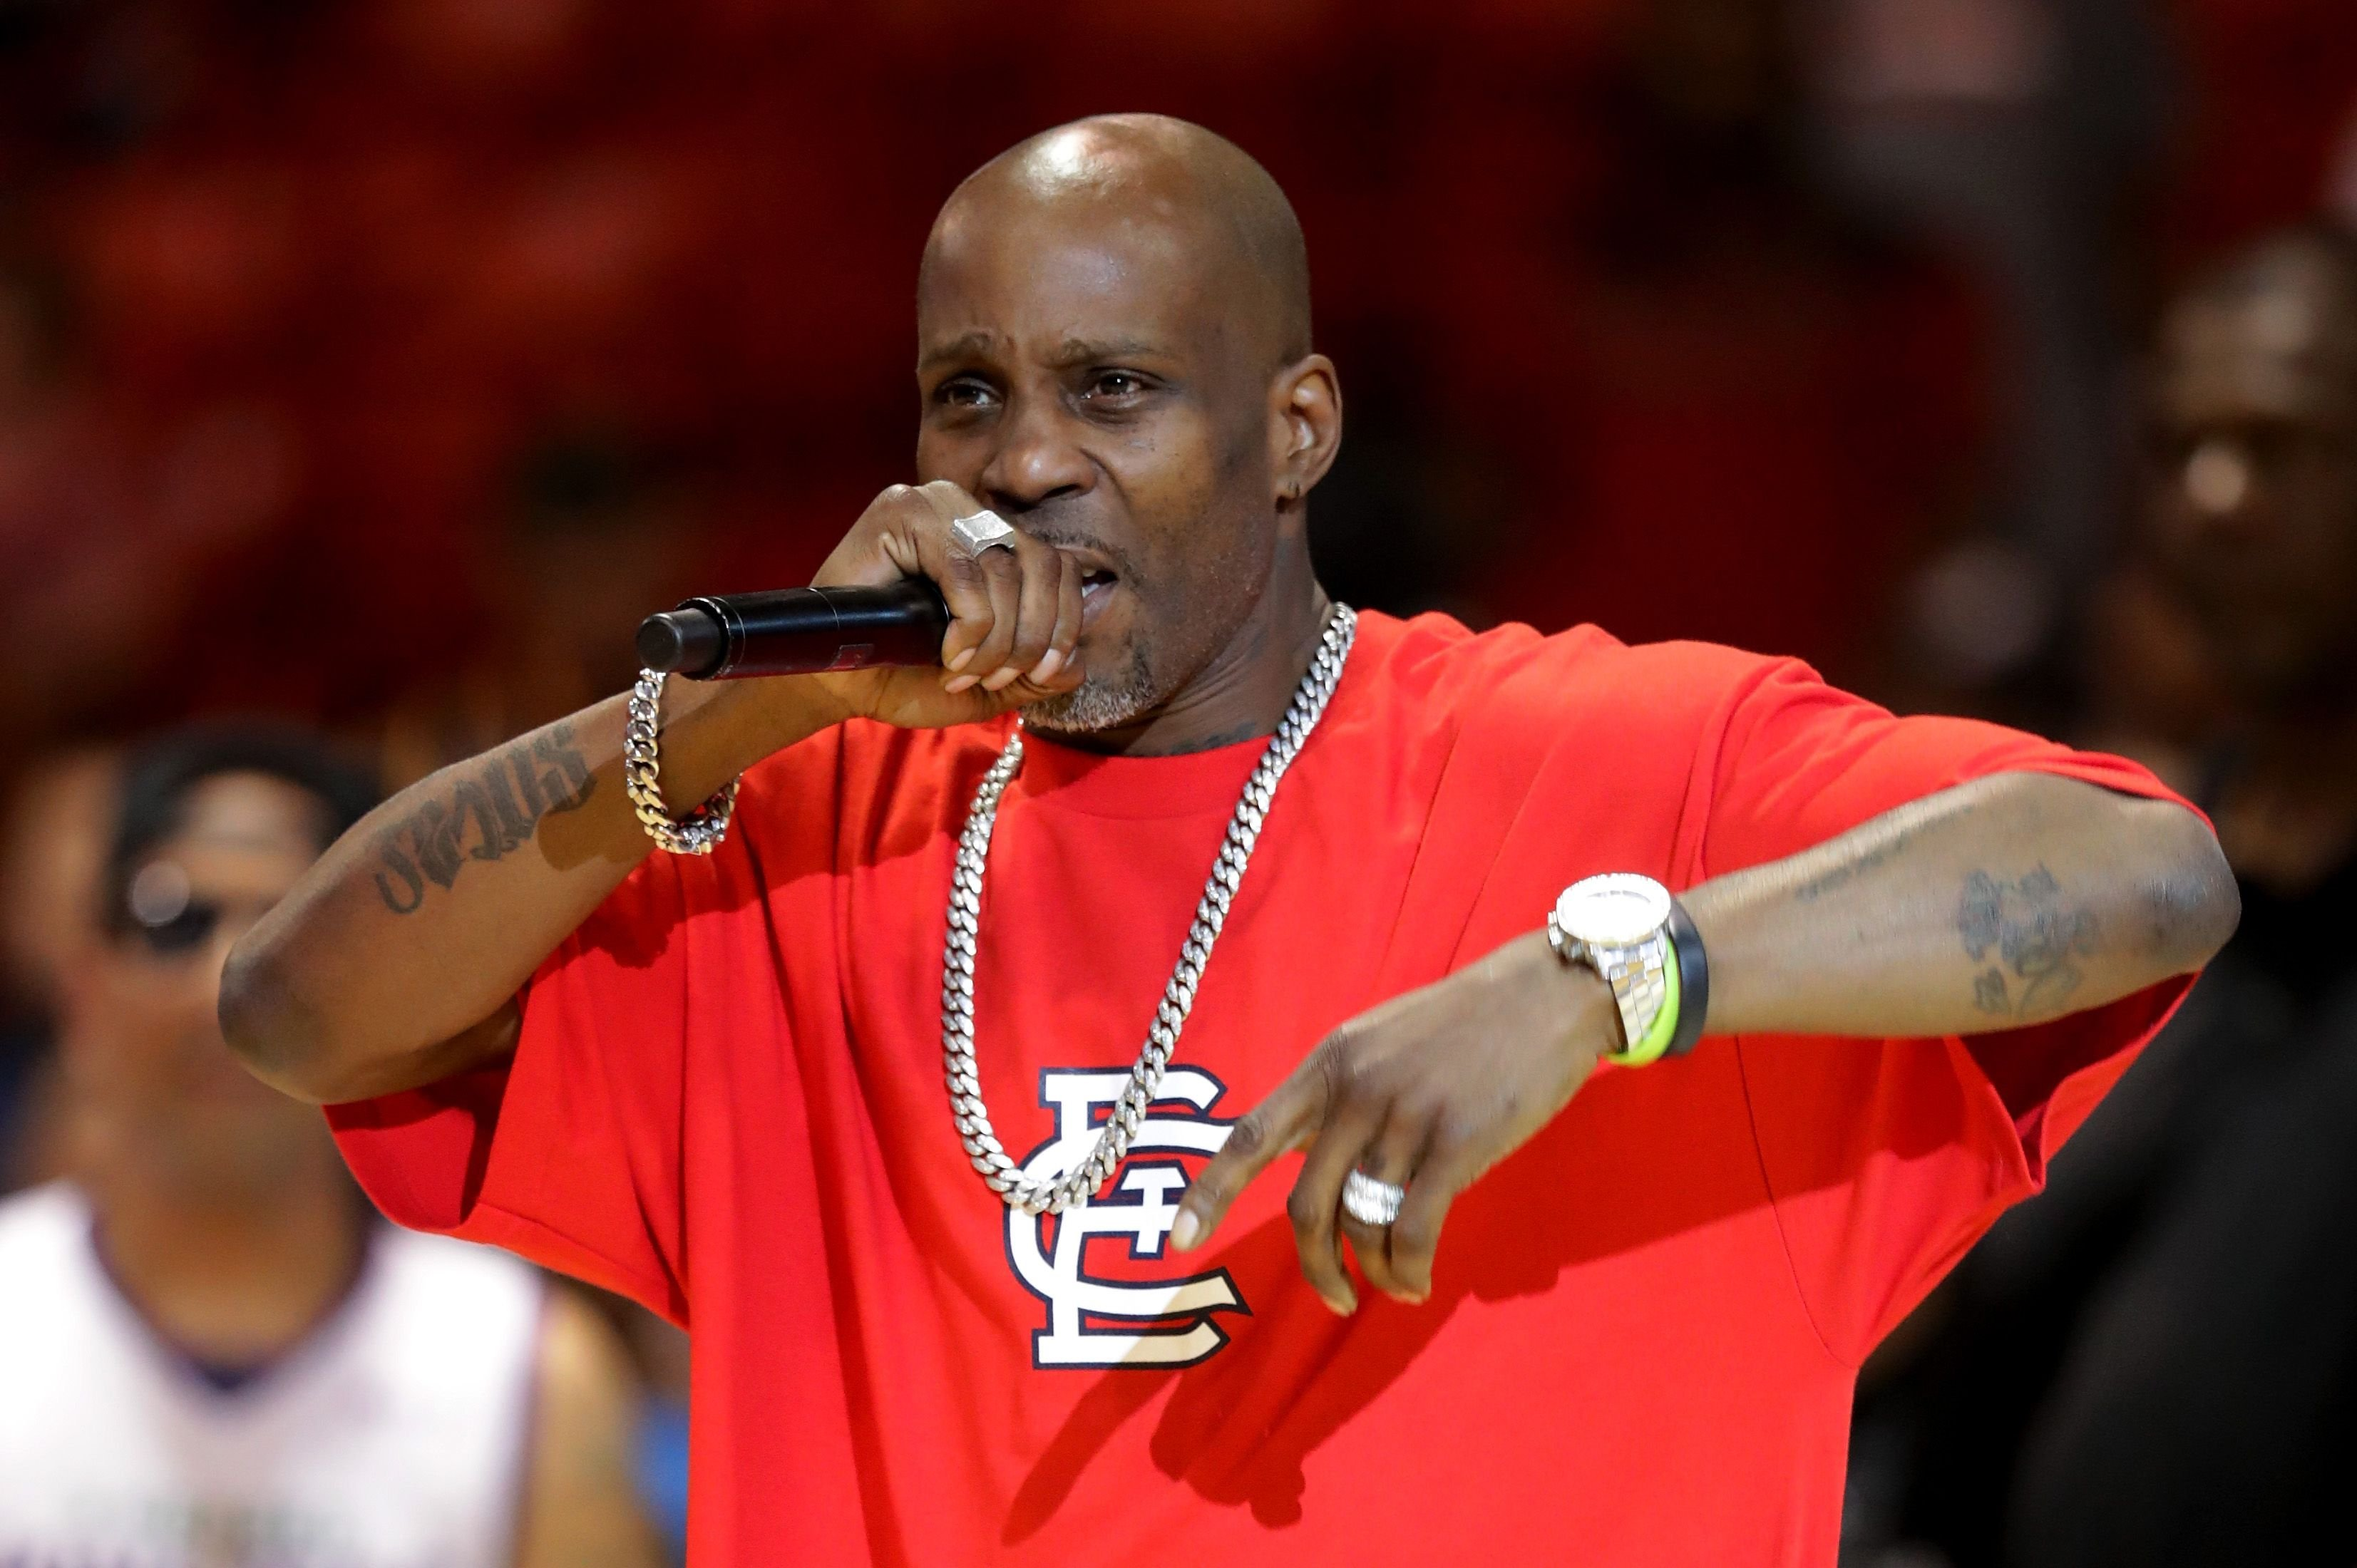 DMX at the UIC Pavilion on July 23, 2017 in Chicago. | Photo: Getty Images